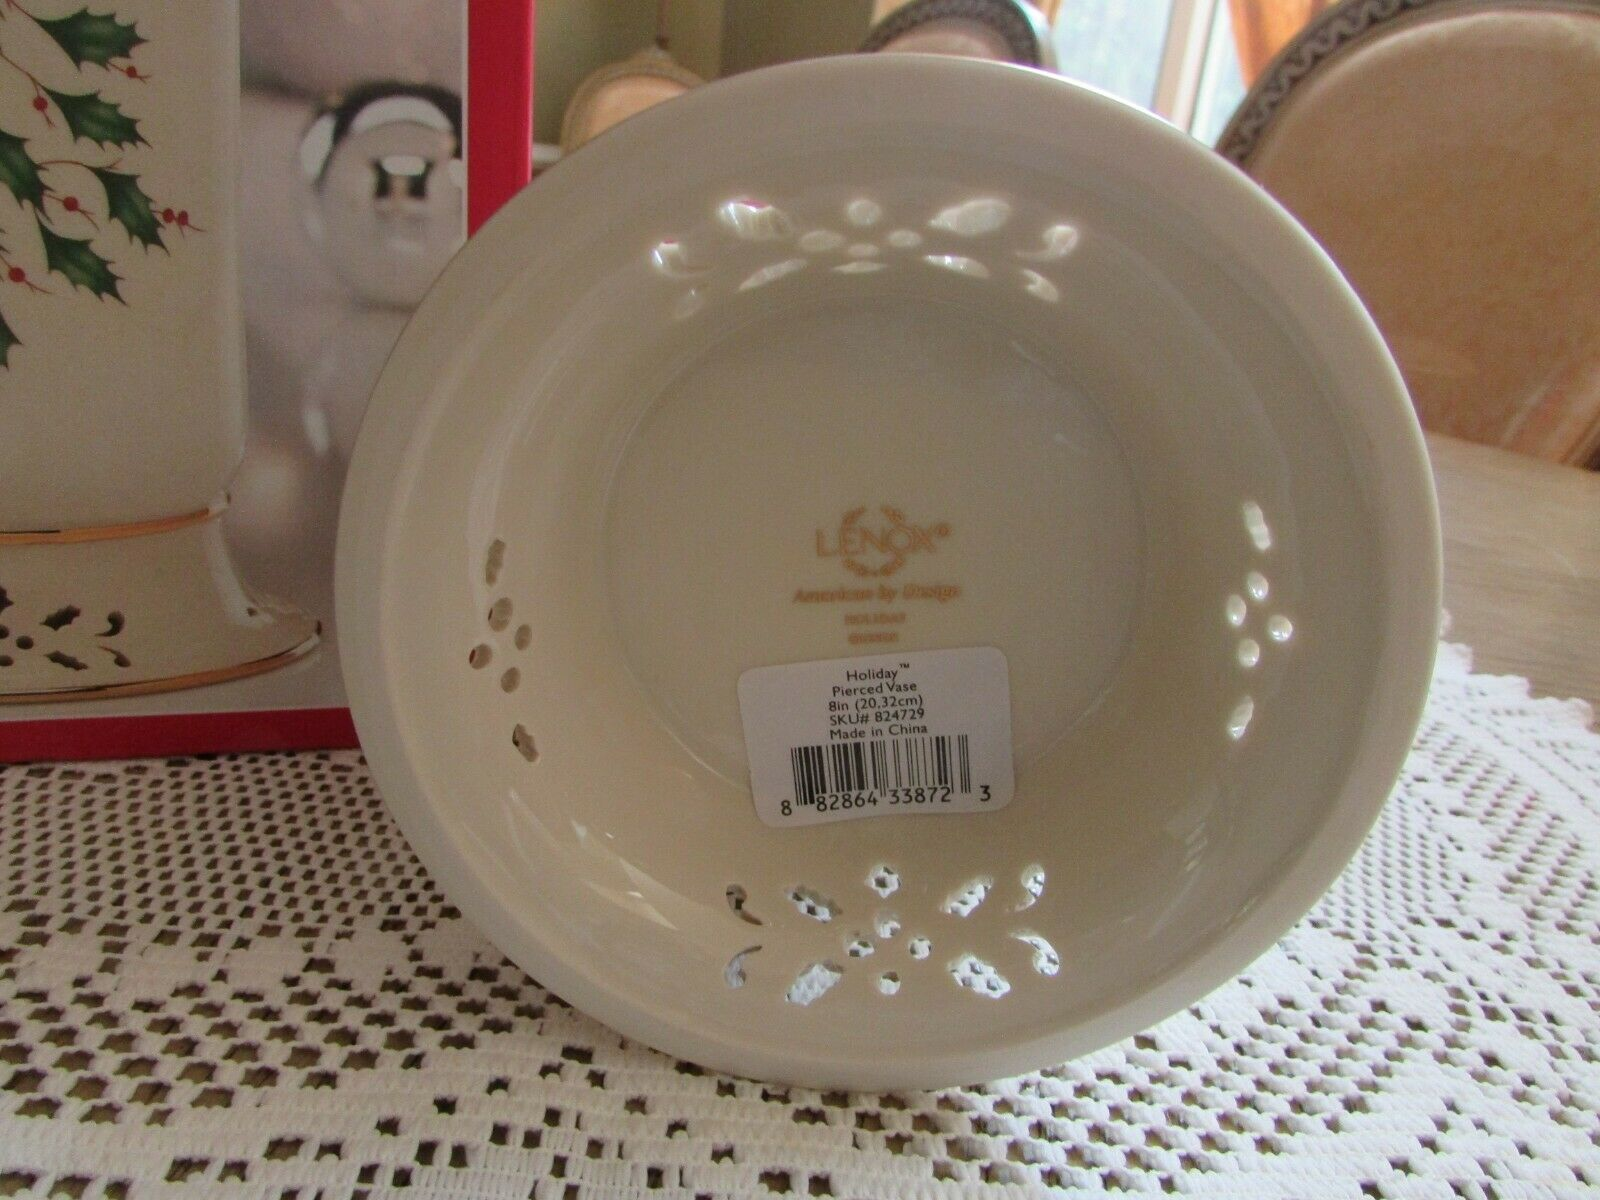 "LENOX CHINA PIERCED HOLIDAY VASE CANDLE HOLDER AMERICAN BY DESIGN 8"" NIB HOLLY"